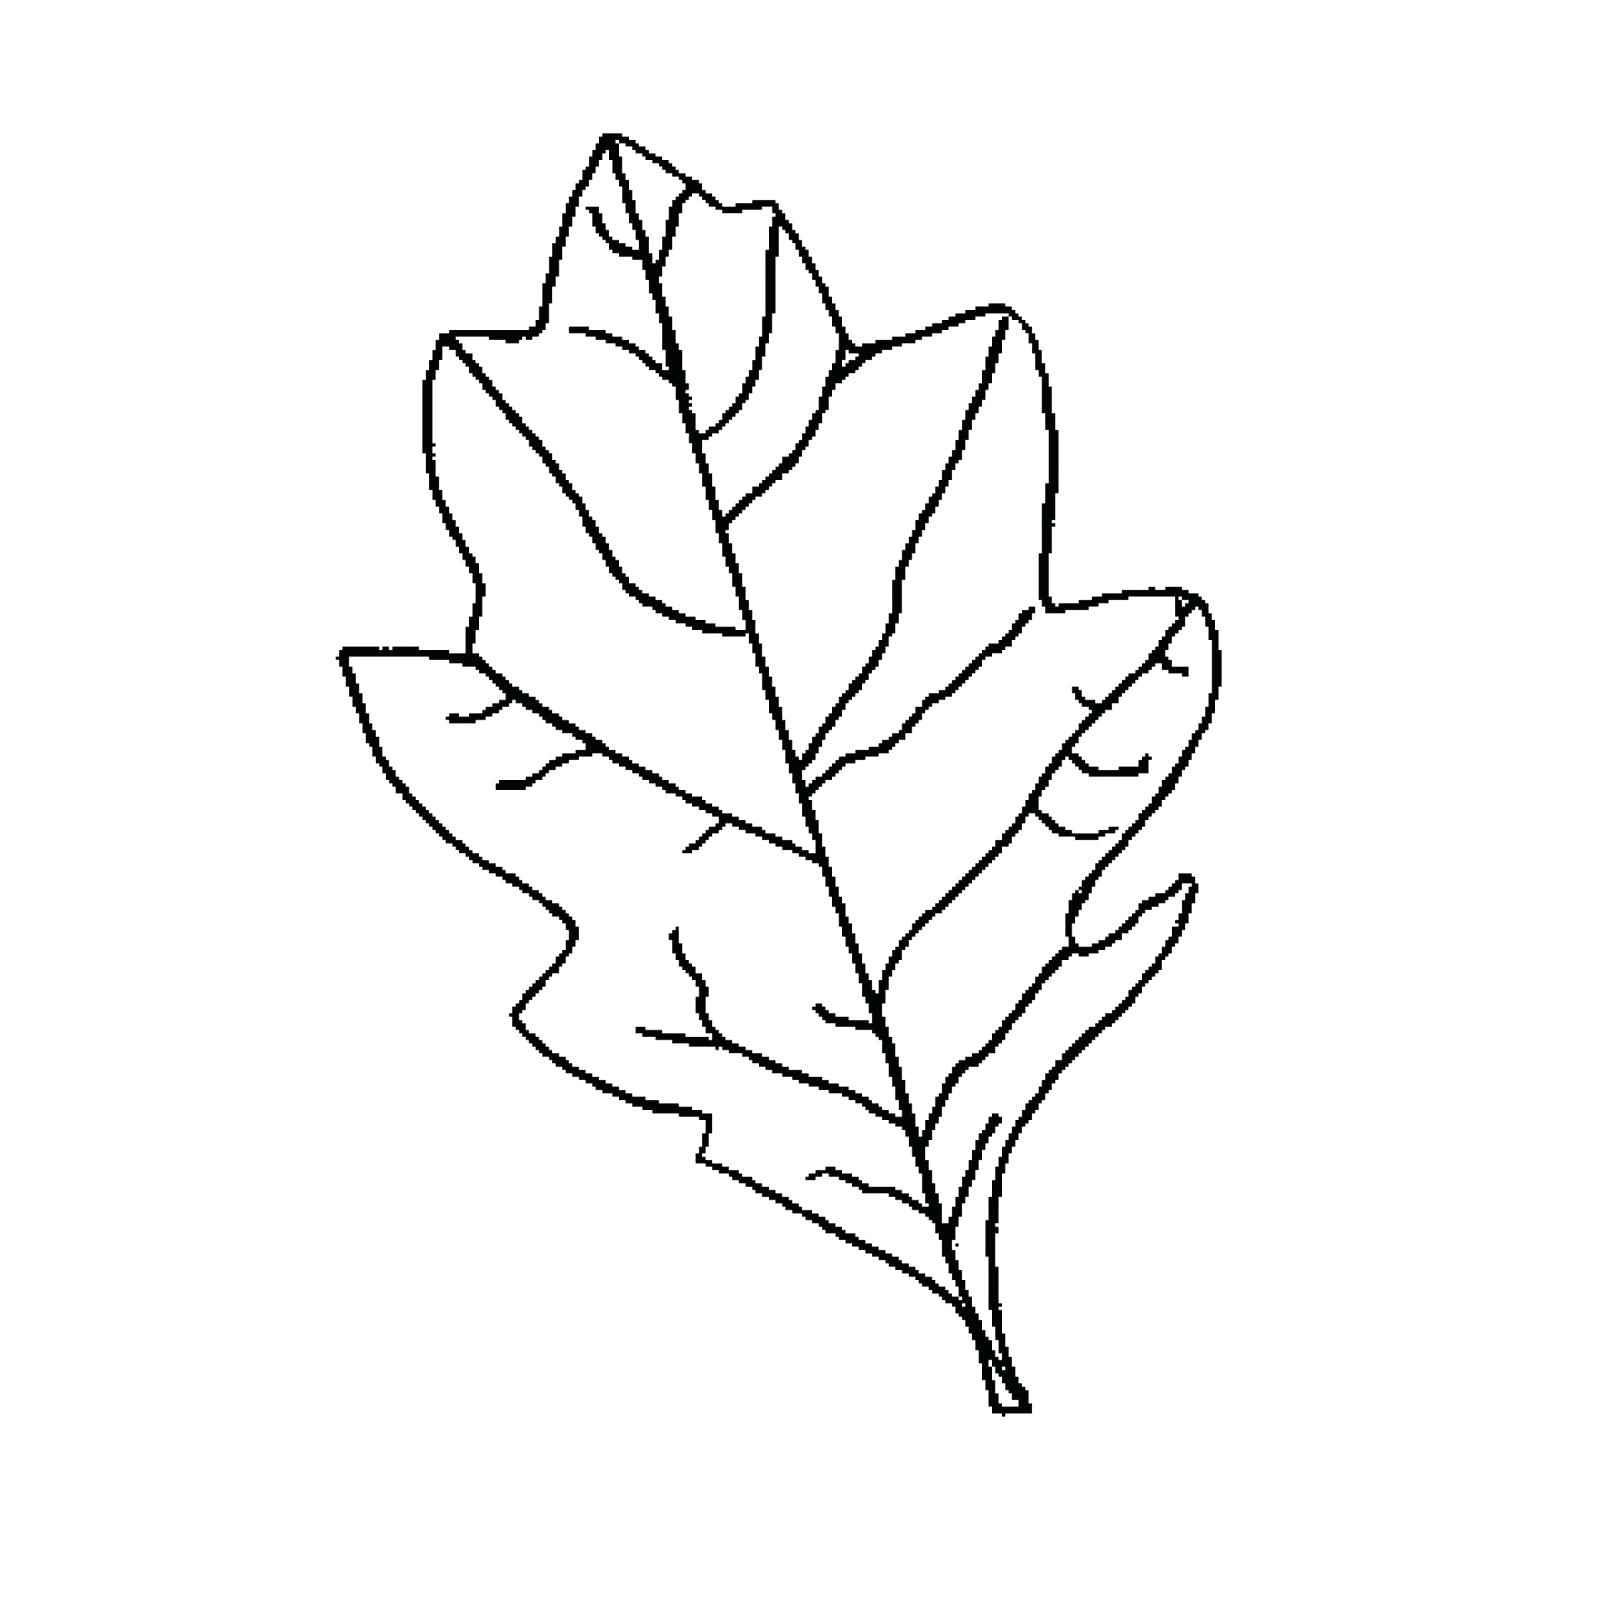 1600x1600 Leaf Template With Writing Lines Maple Leaf Shape